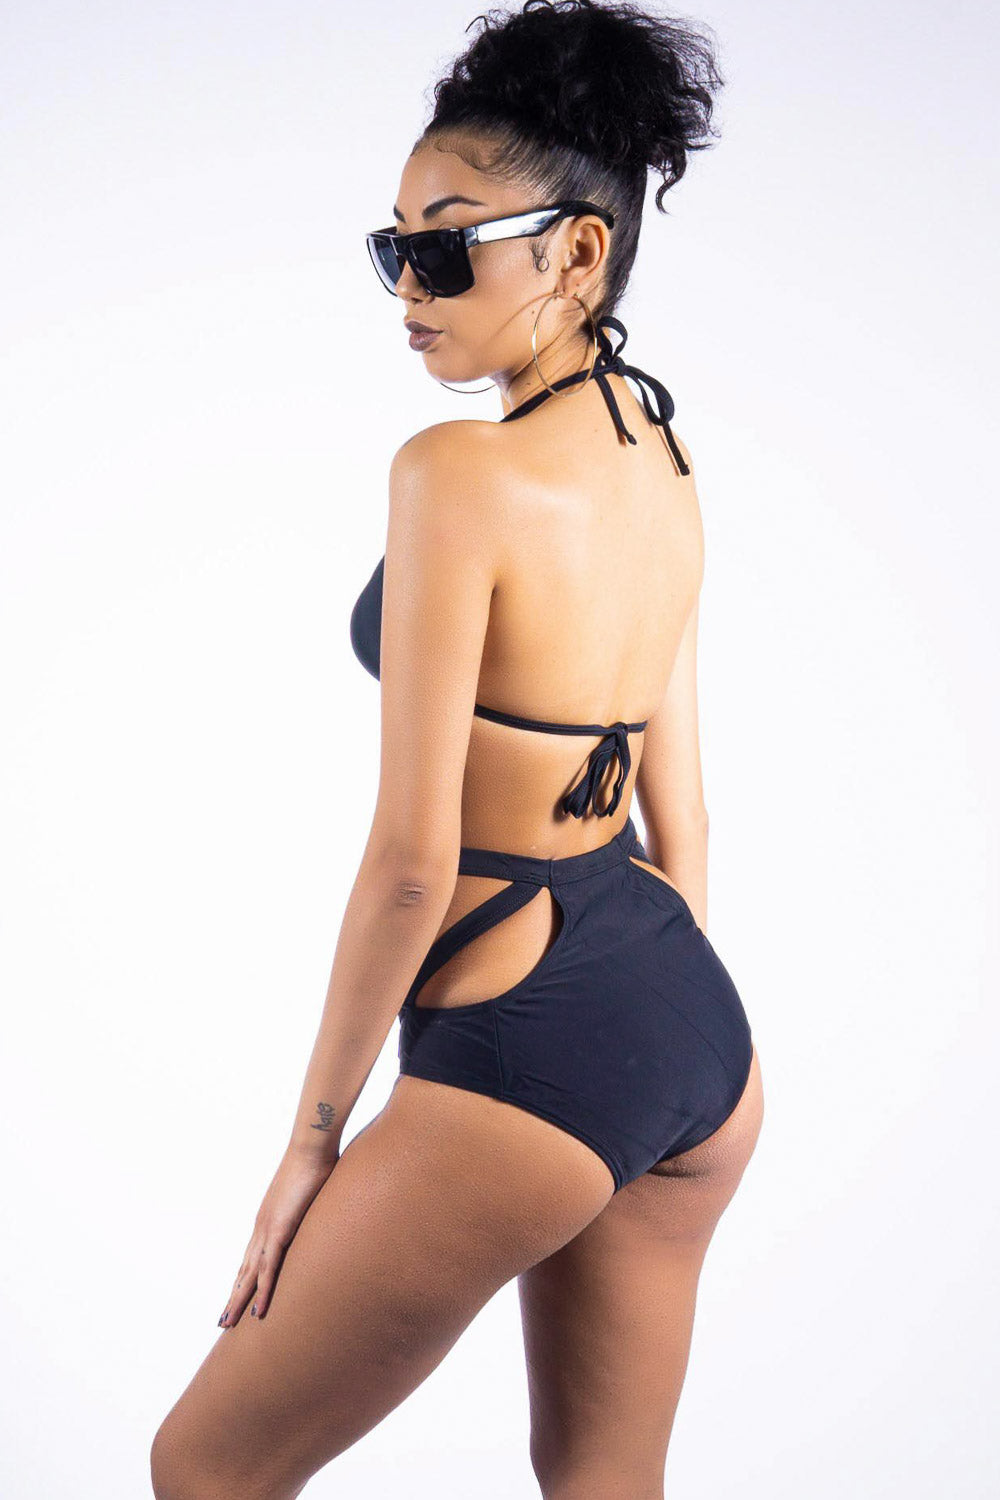 Black Beach two piece, black